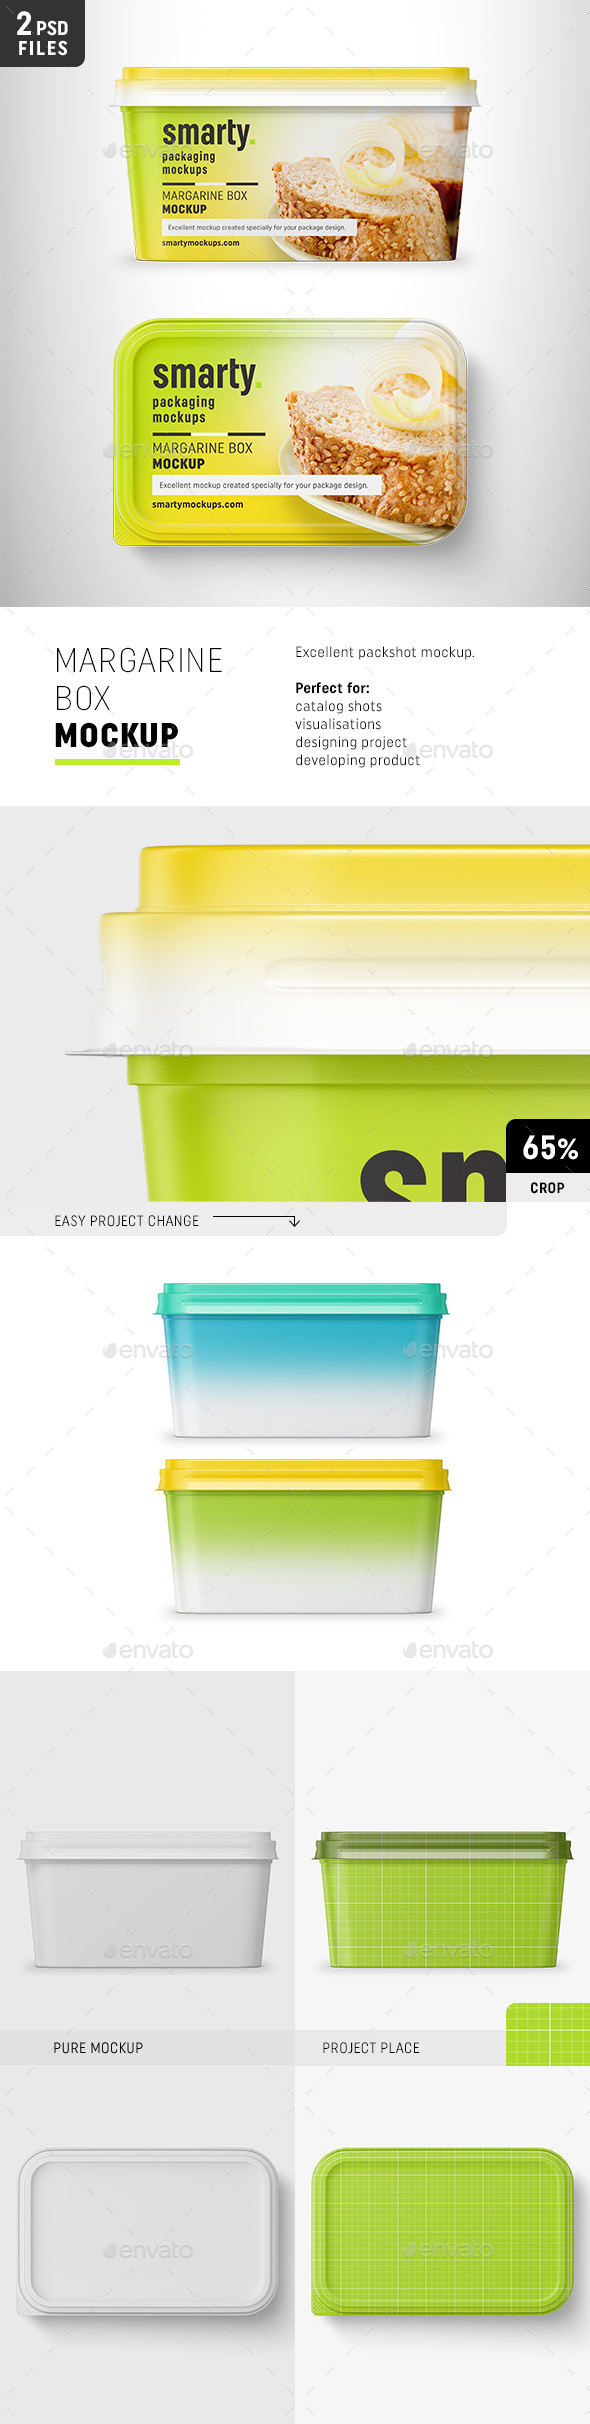 Margarine Box Mockup - Food and Drink Packaging